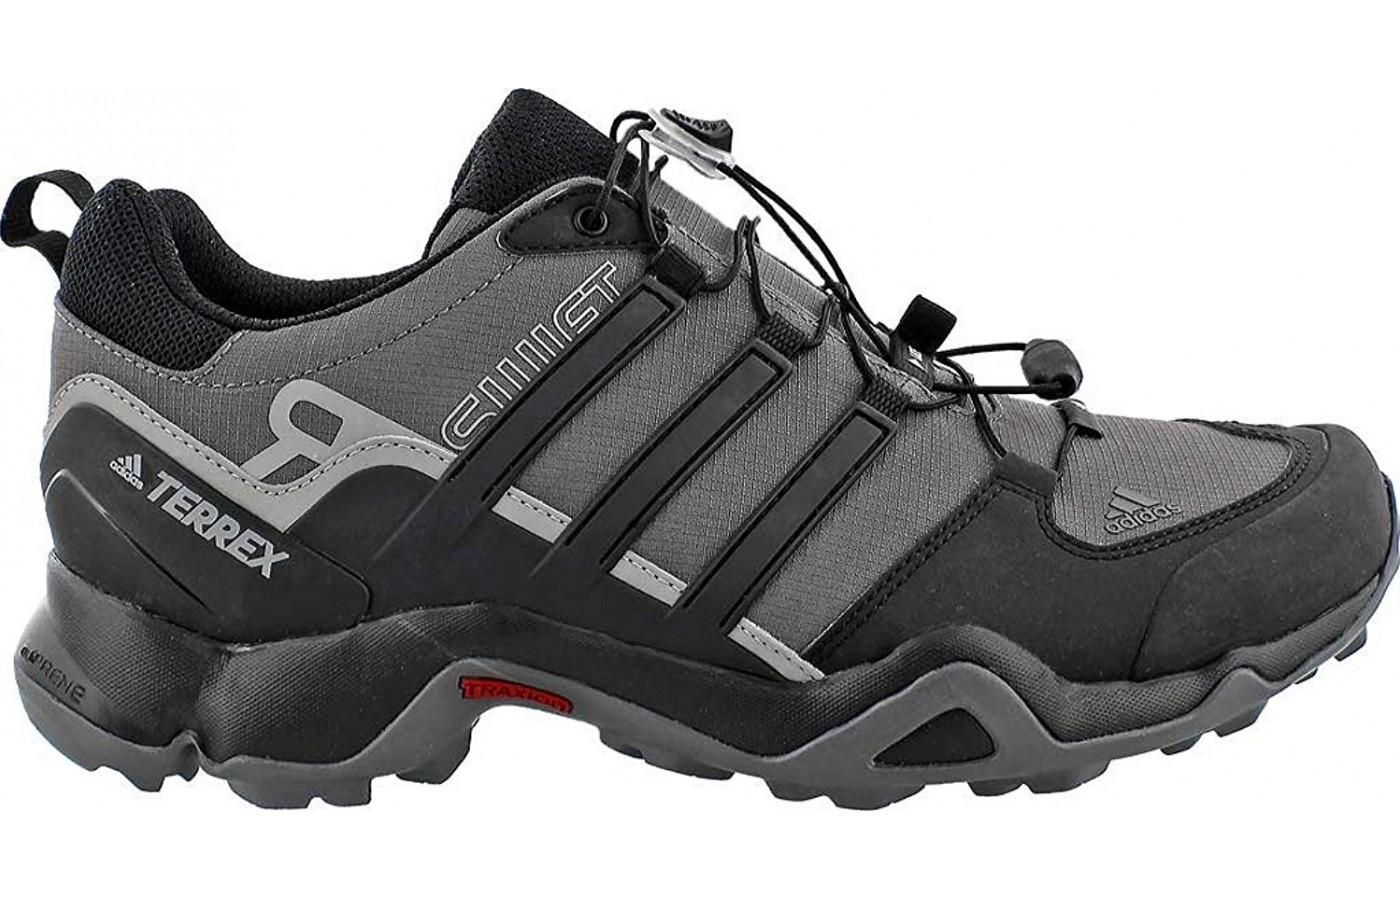 Adidas Terrix Swift R GTX side